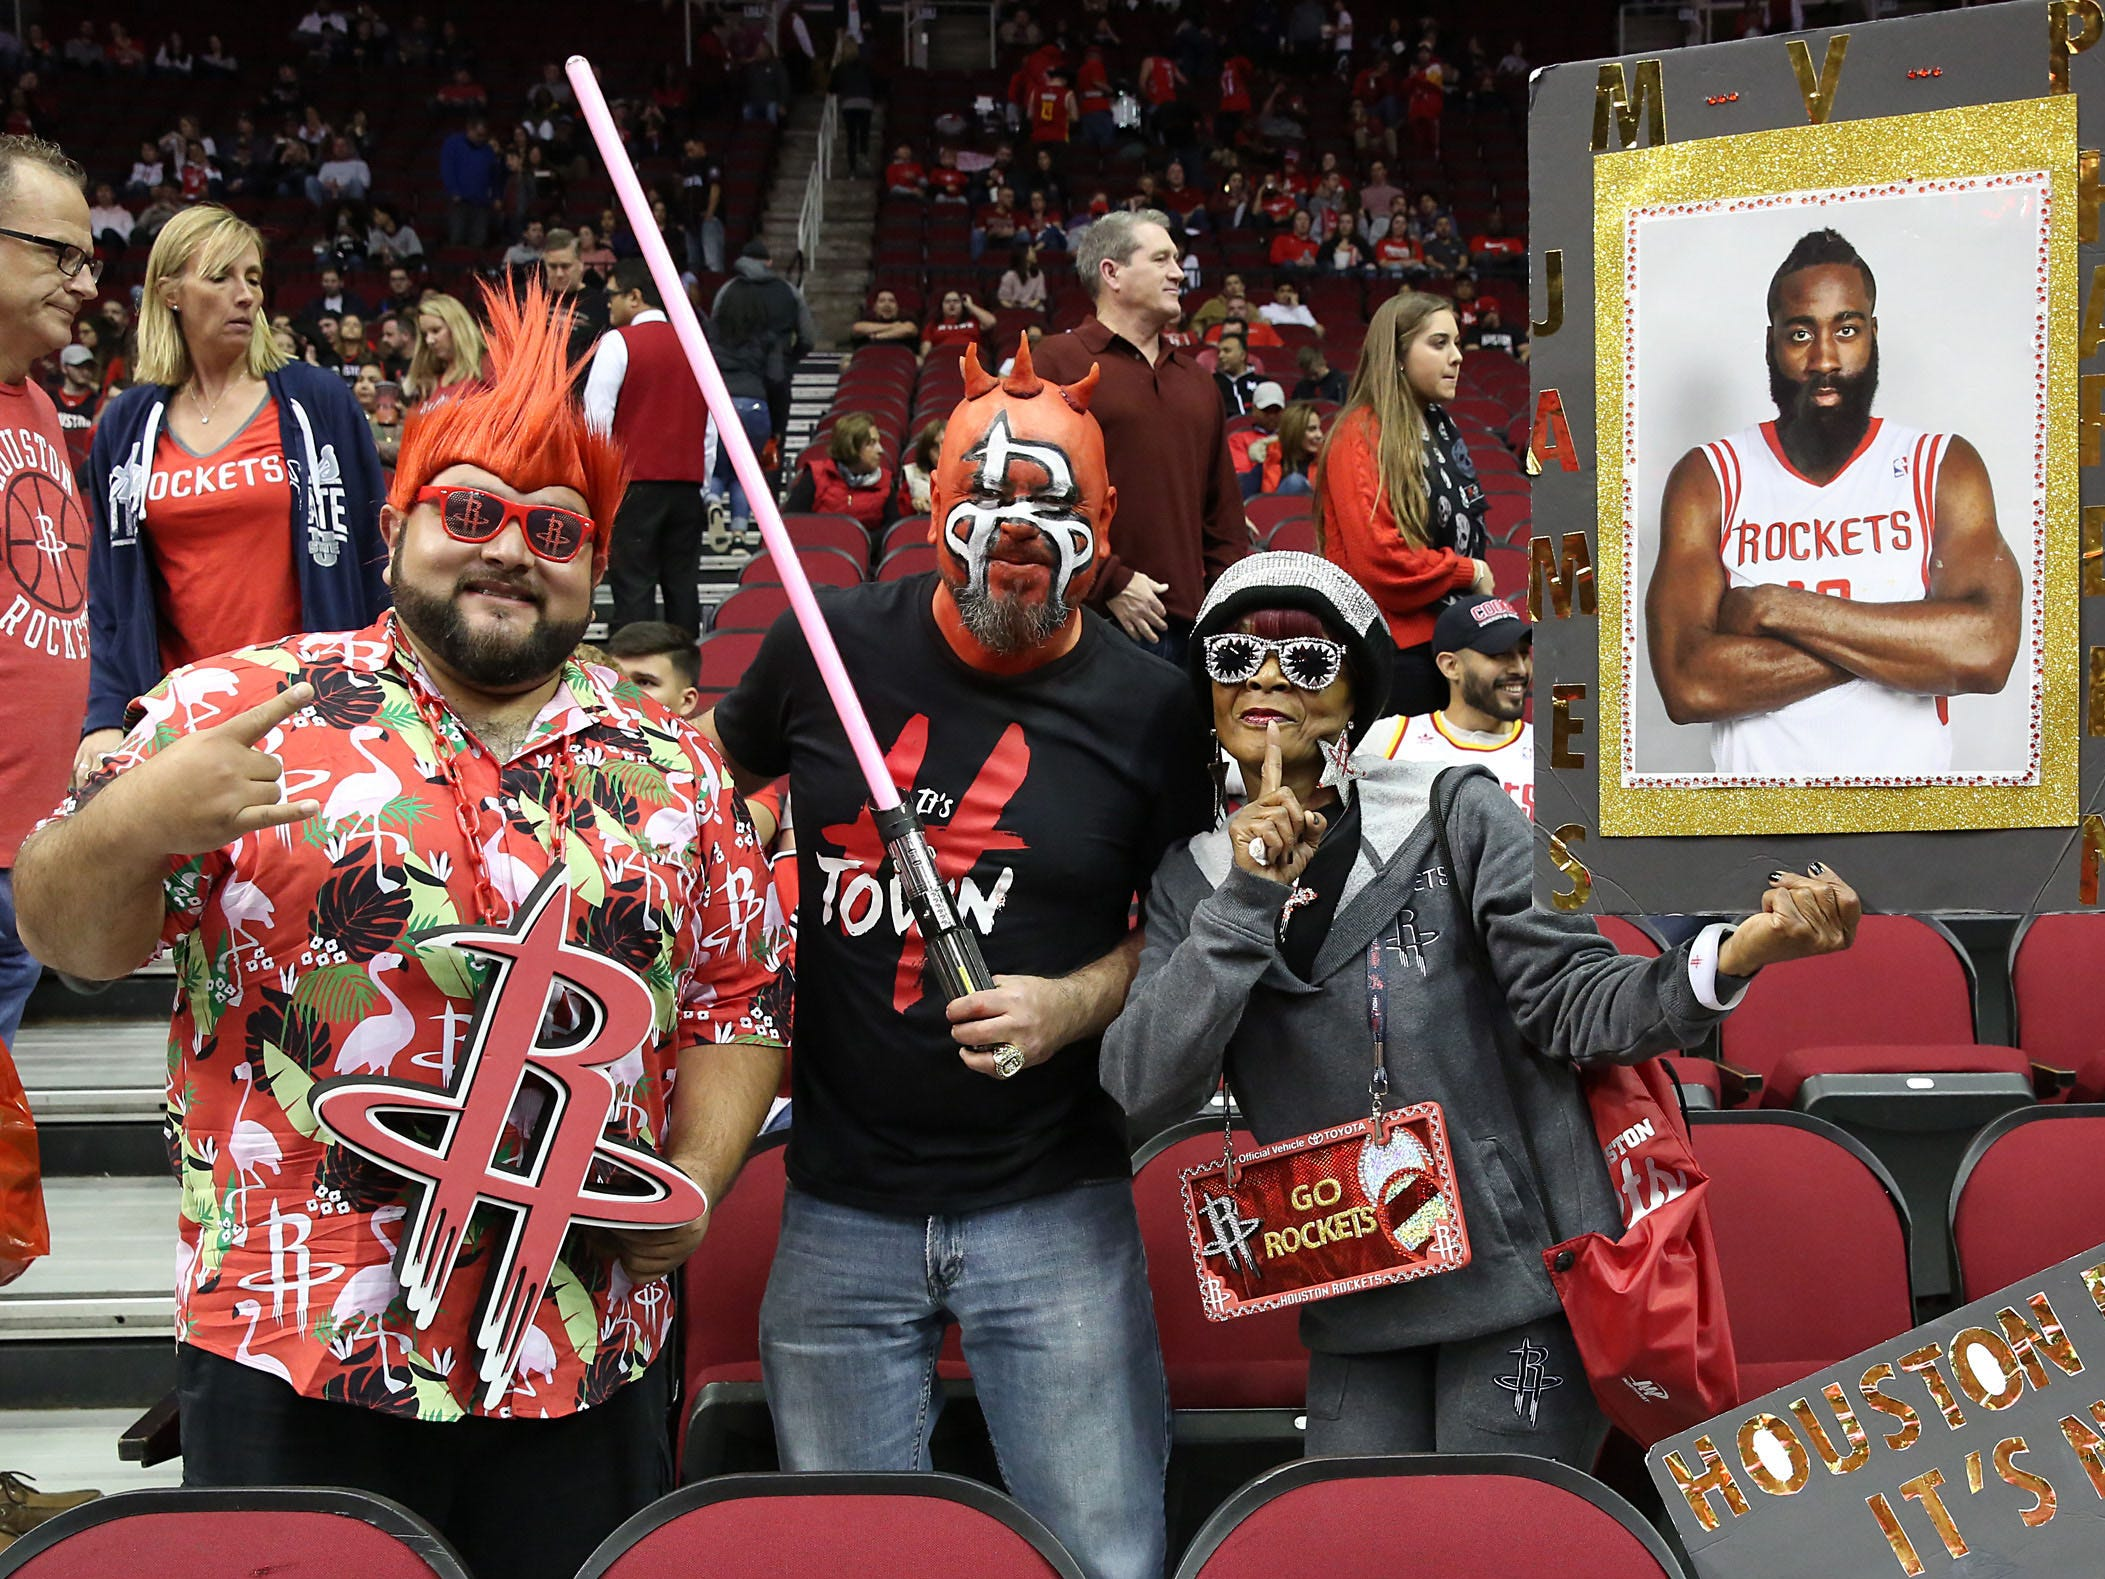 Jan. 11: Rockets fans get fired up before facing the Cavaliers in Houston.